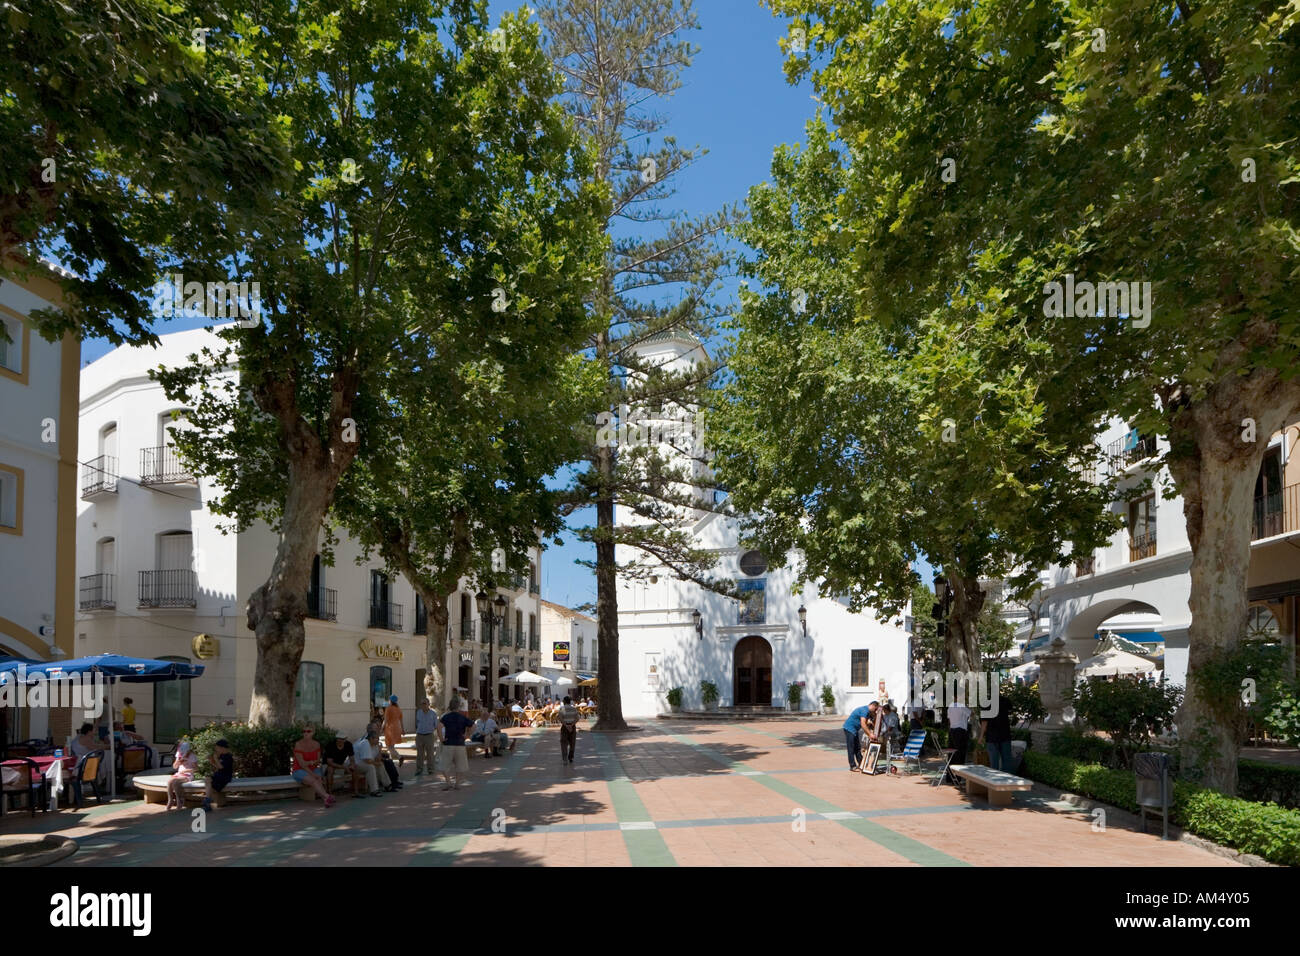 View from the Balcon de Europa towards the Church, Nerja, Costa del Sol, Andalucia, Spain - Stock Image